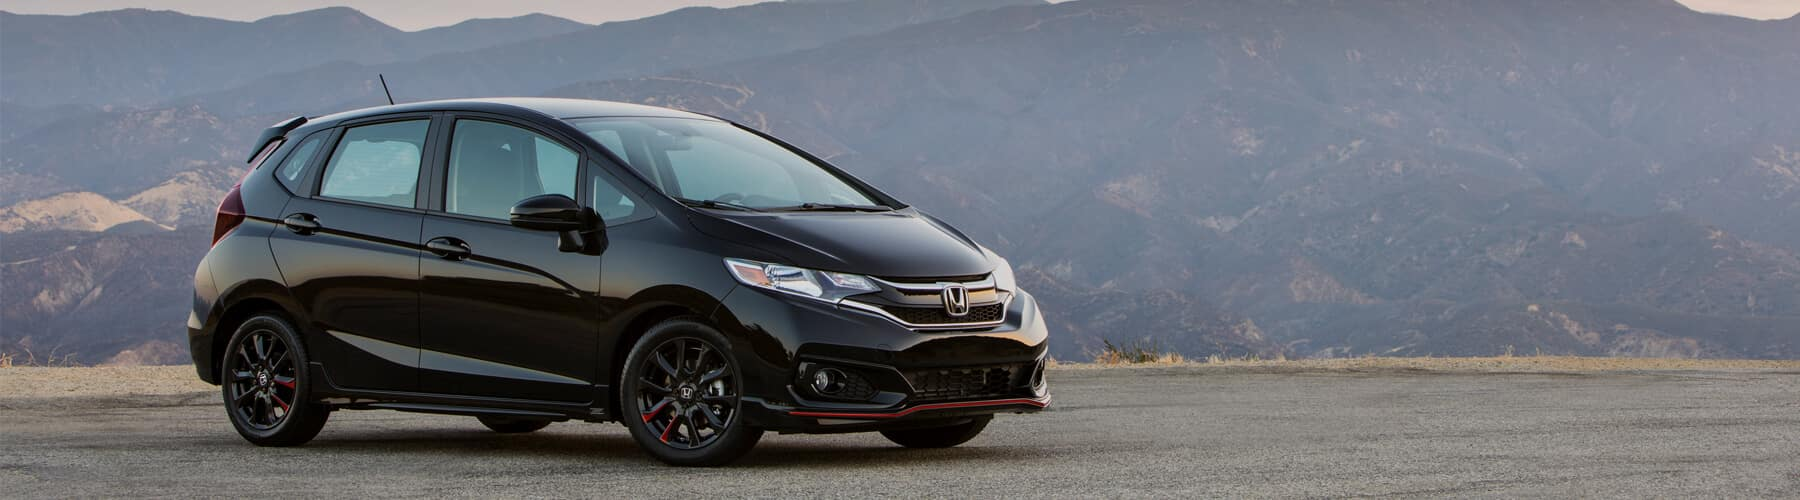 2020 Honda Fit Slider